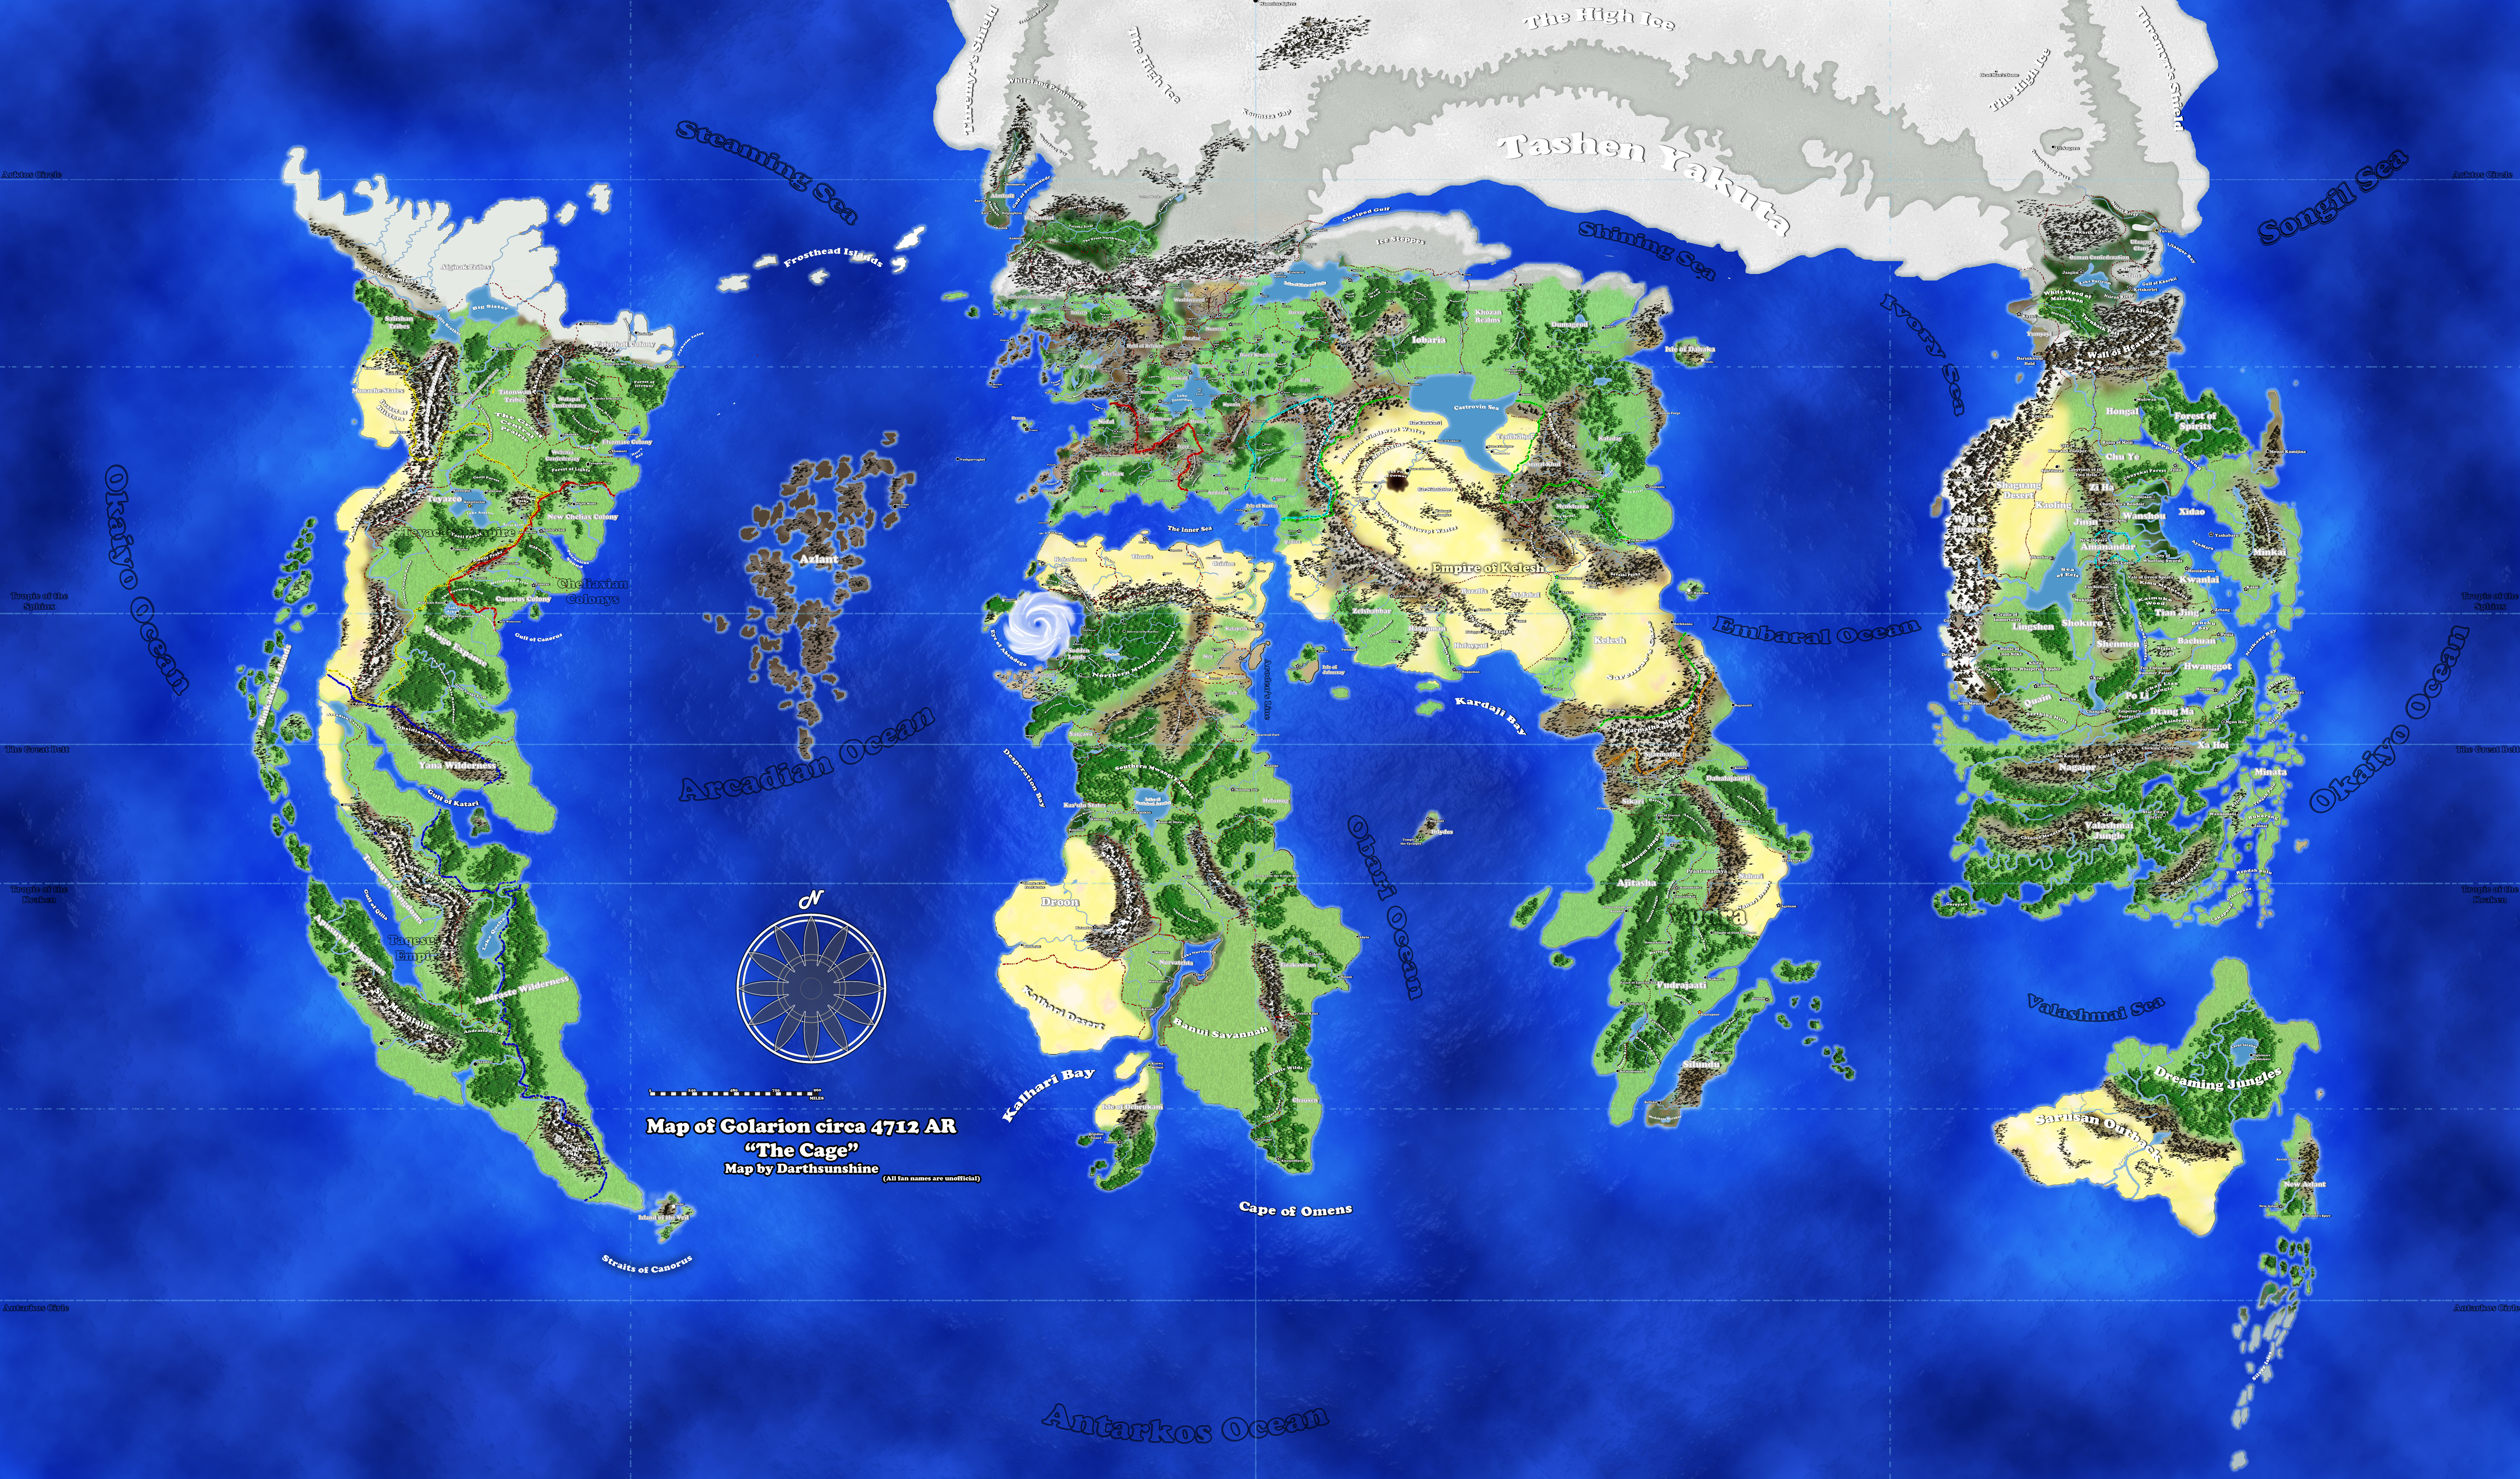 Google map of golarion pathfinder society singapore post by daryl kong on apr 7 2013 at 1006am gumiabroncs Gallery